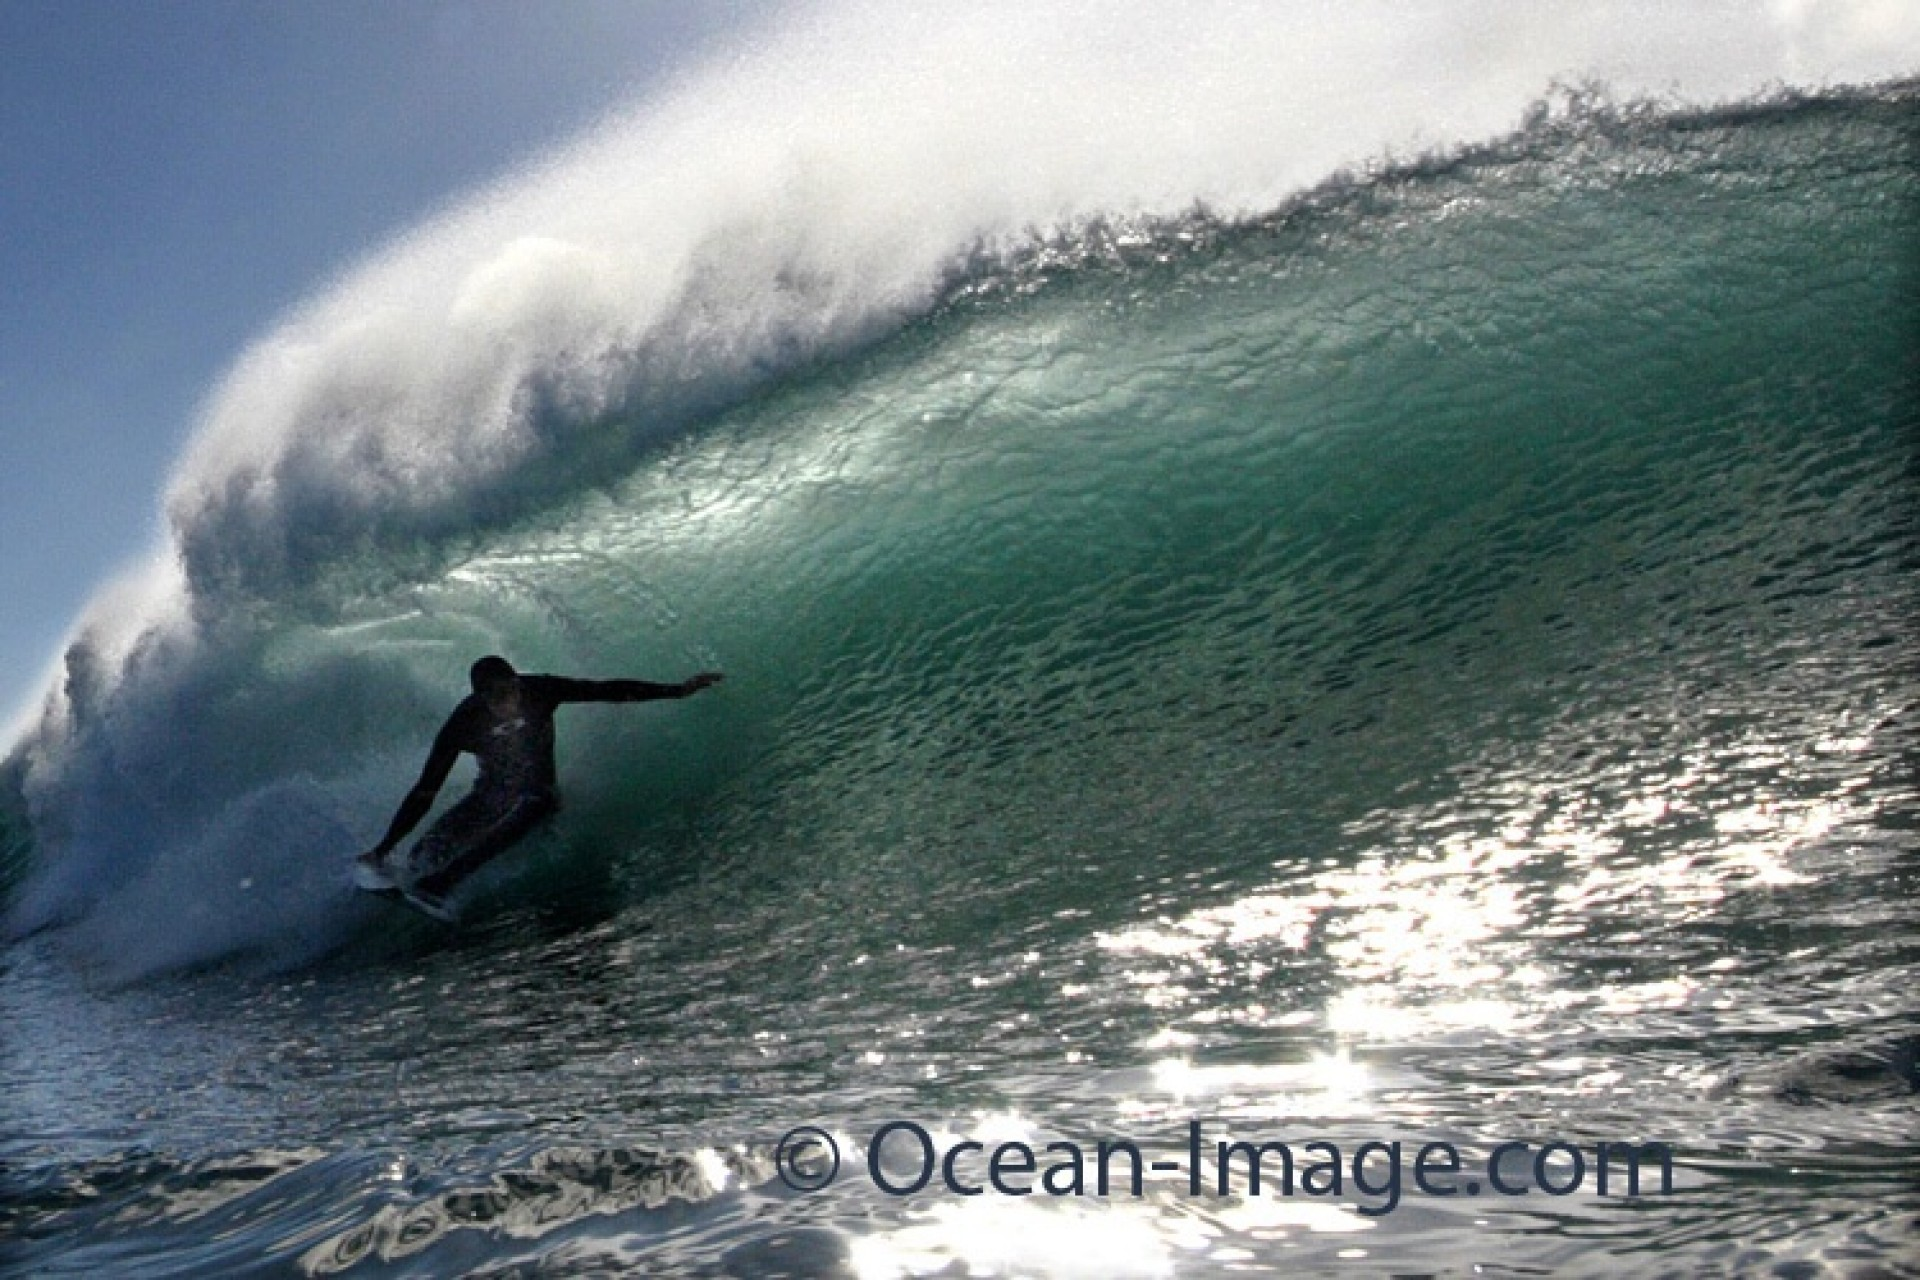 Mike Newman's photo of Praa Sands